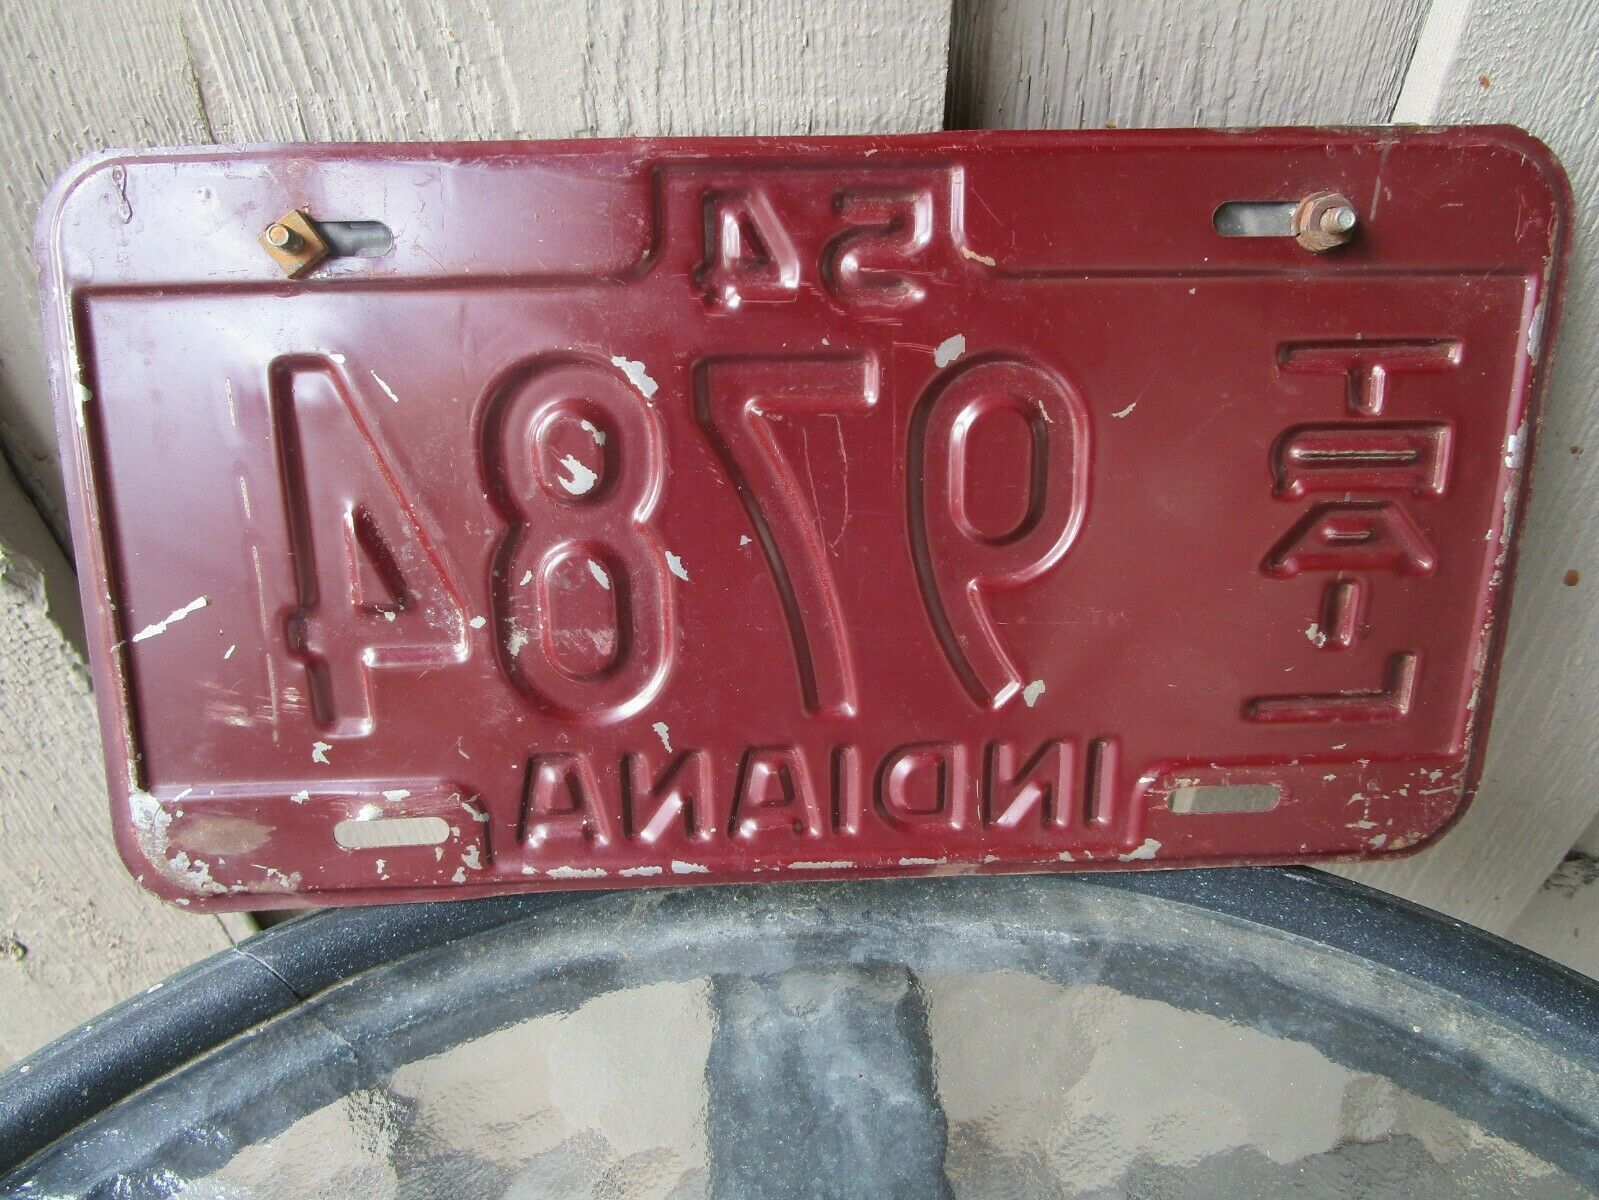 Vintage 1954 Indiana Trailer License Plate w/ 55 Tag 9784 7266 Airstream Shasta image 6